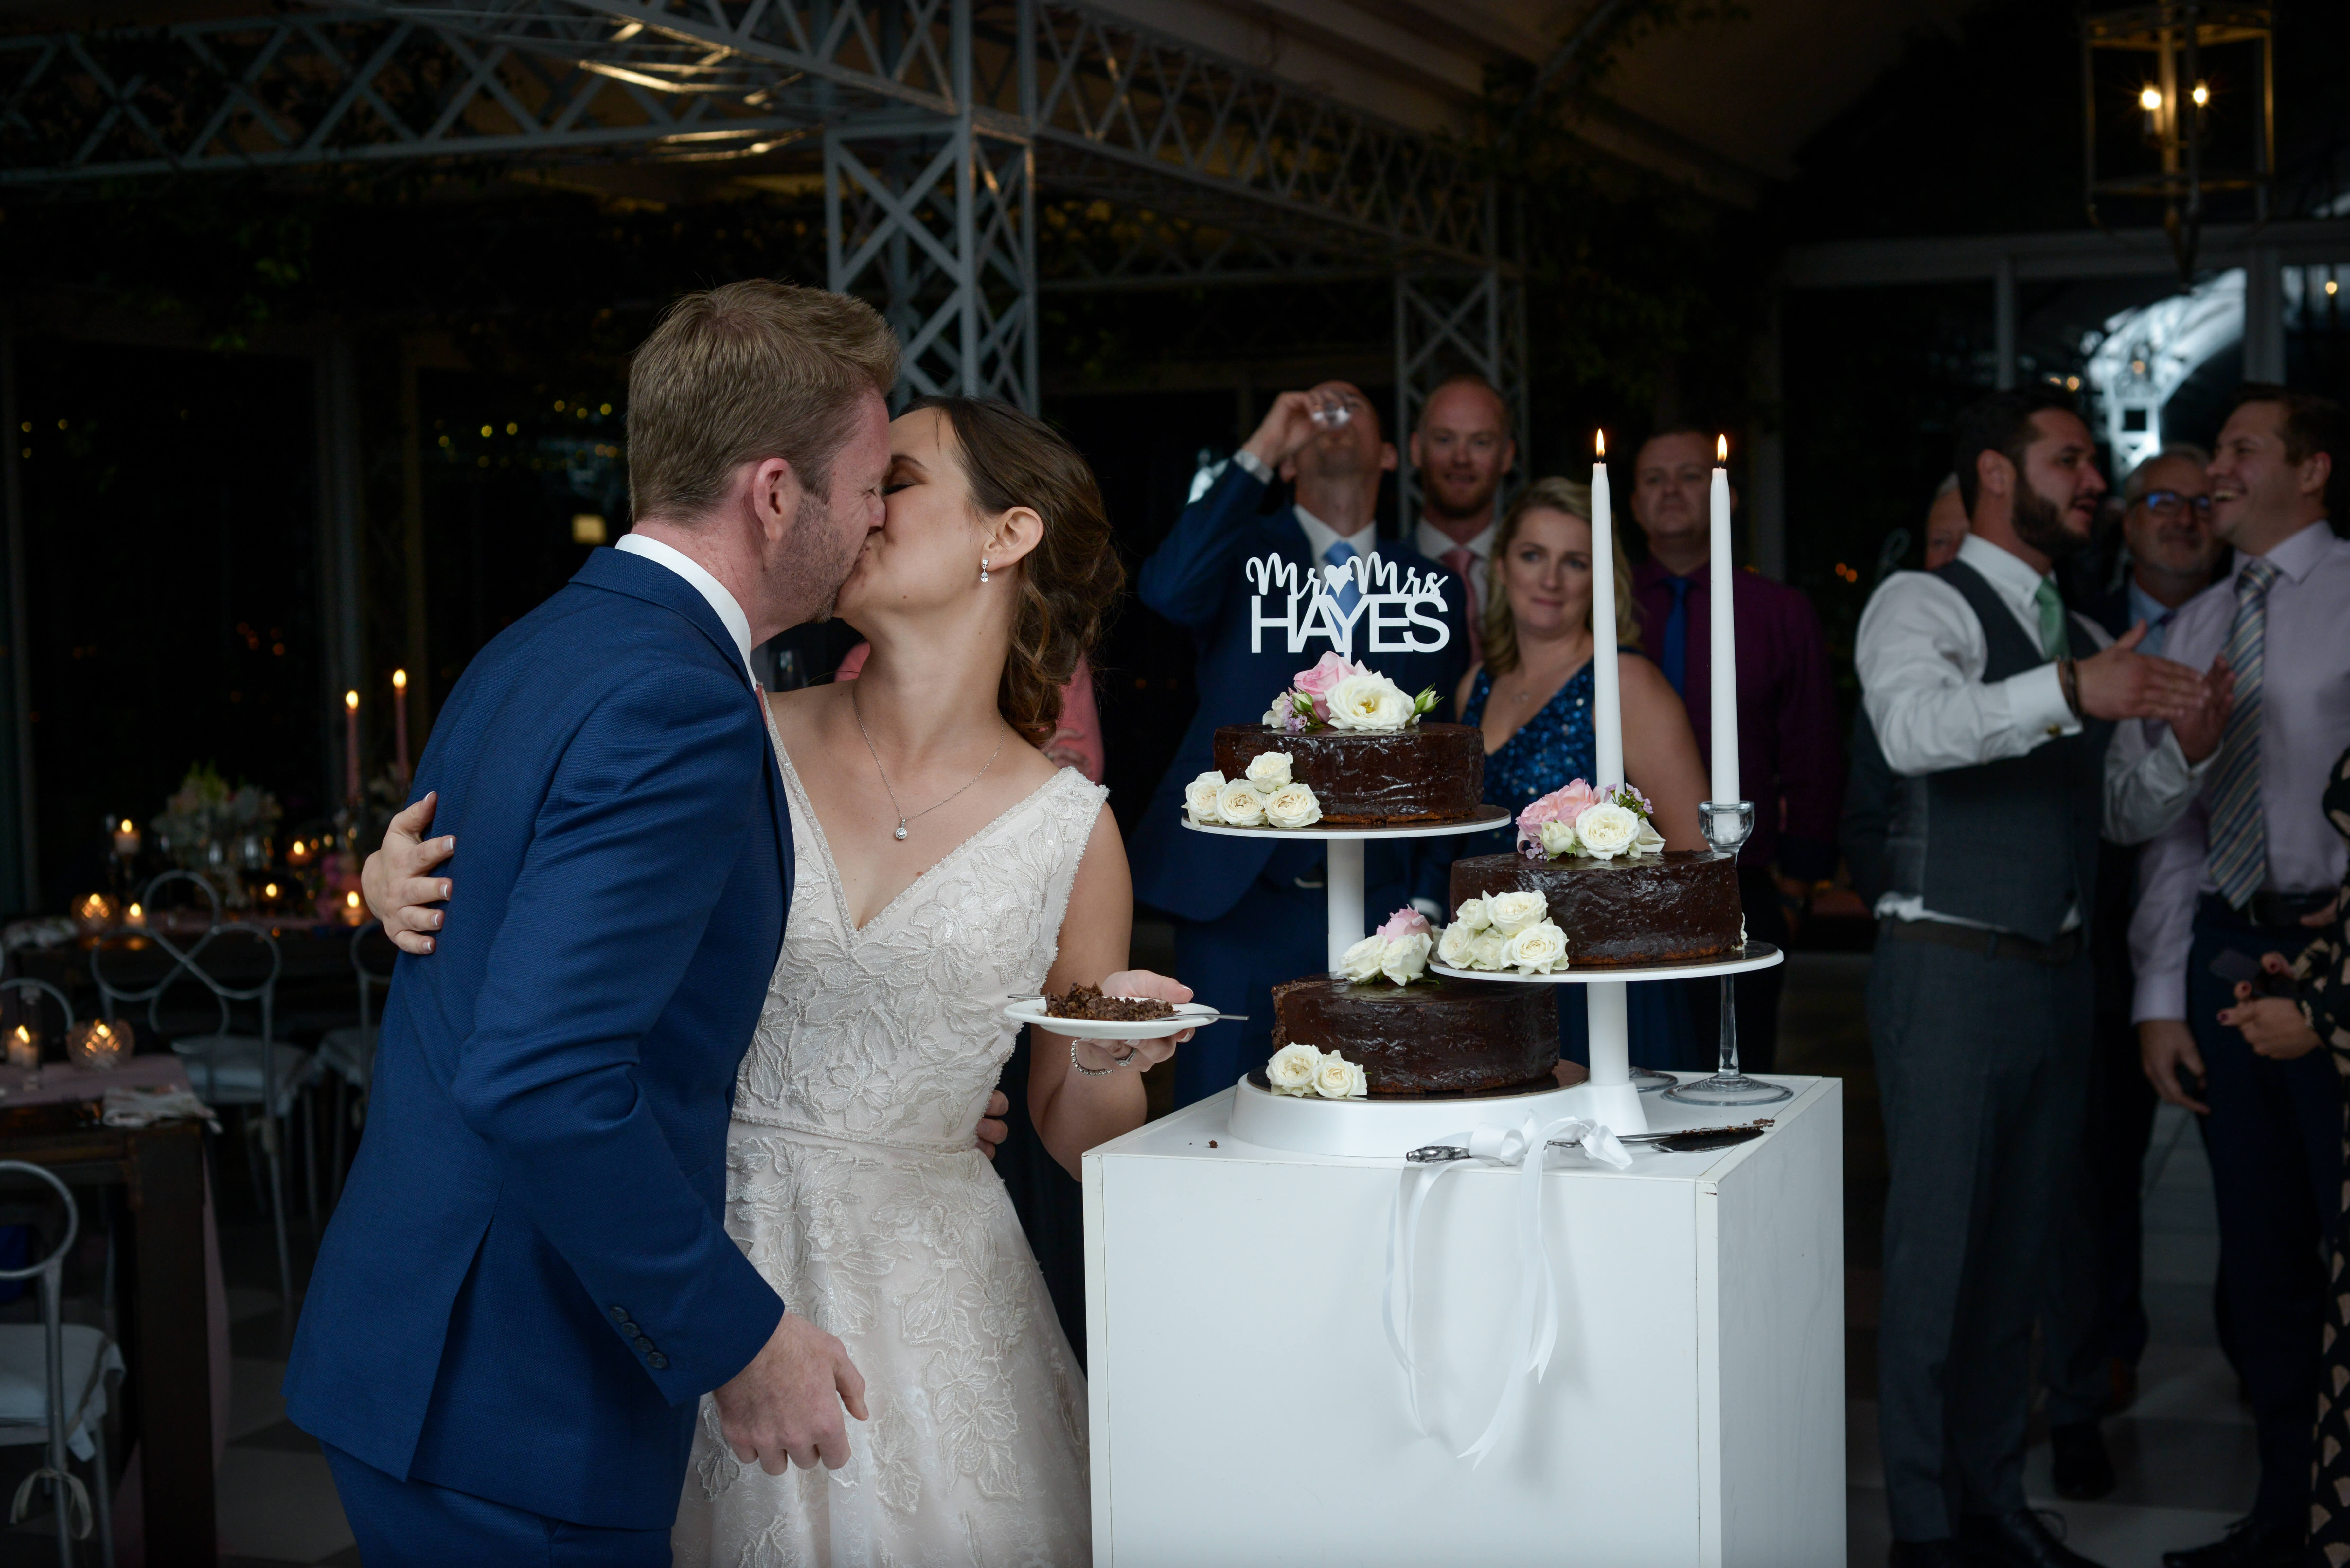 Groom and his bride kissing after cutting their wedding cake.